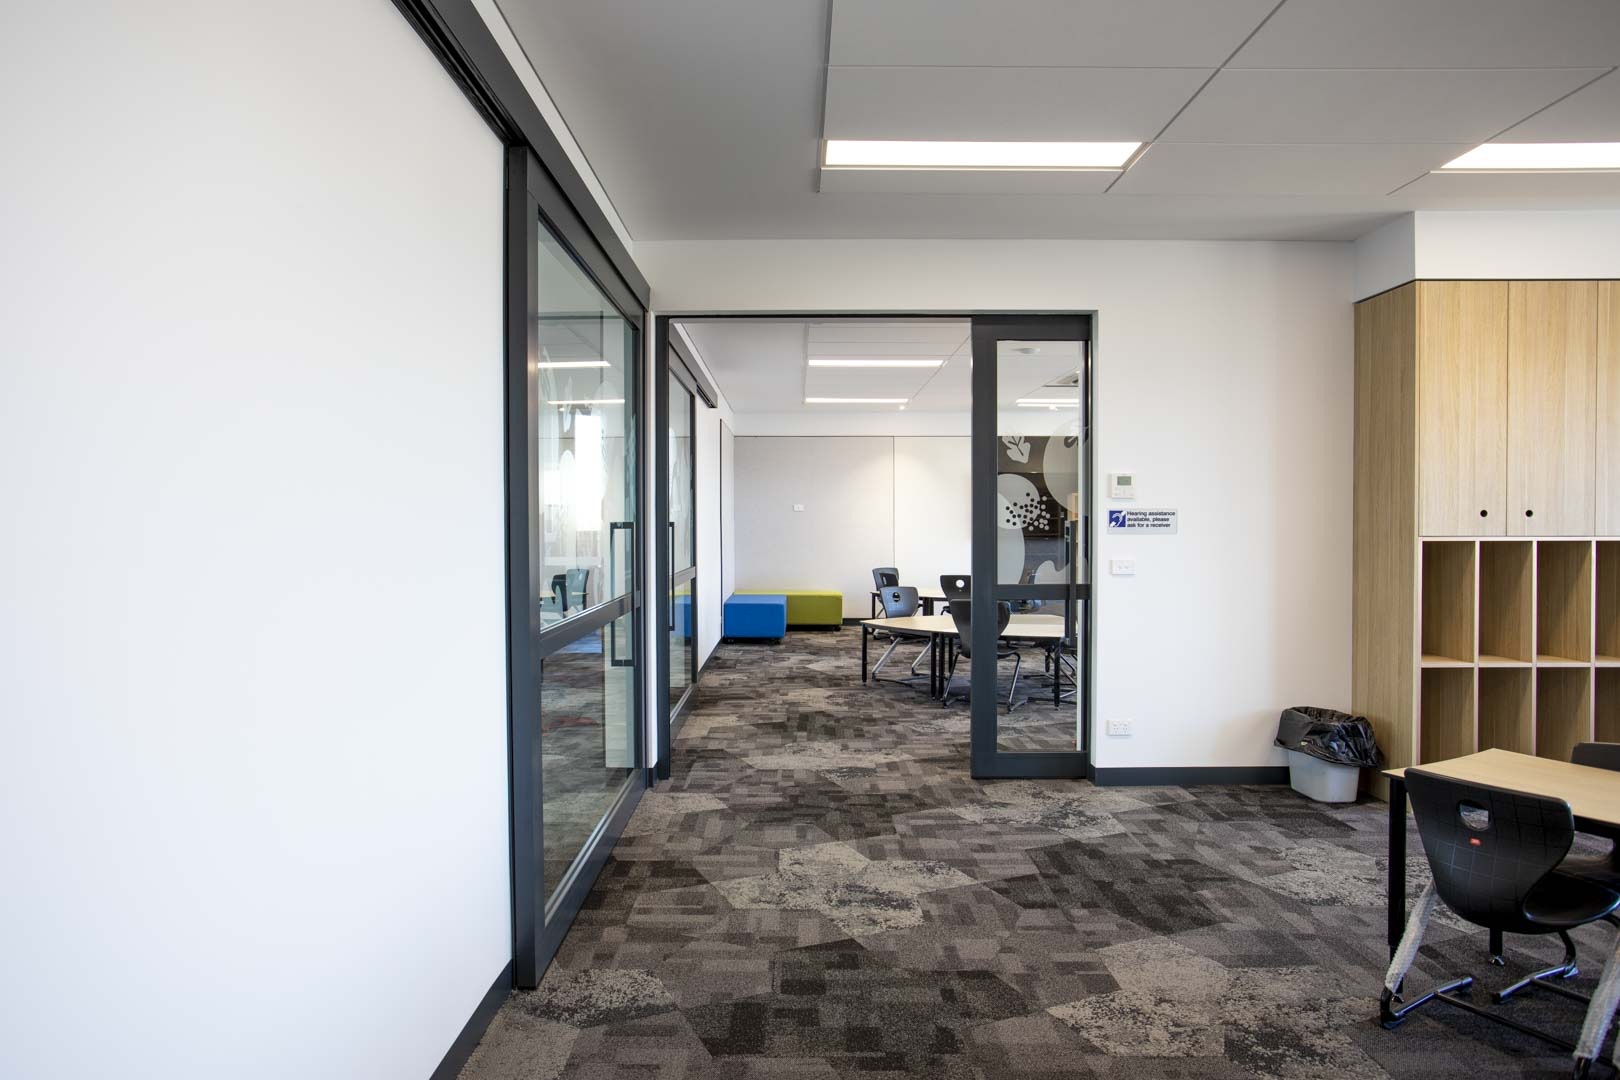 image of glazed acoustic sliders inside a primary school's general learning area